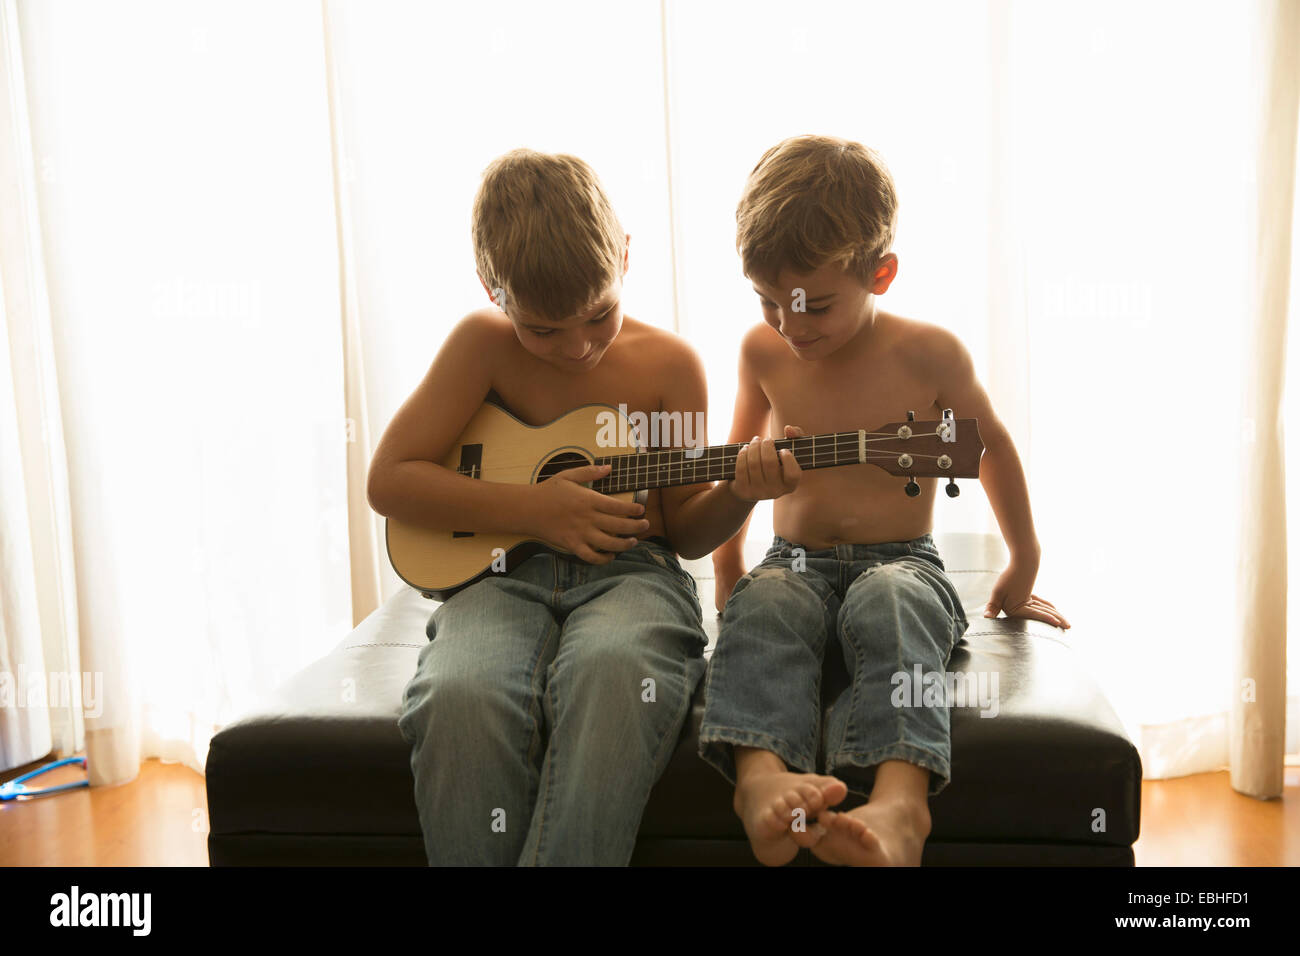 Brothers playing guitar at home - Stock Image